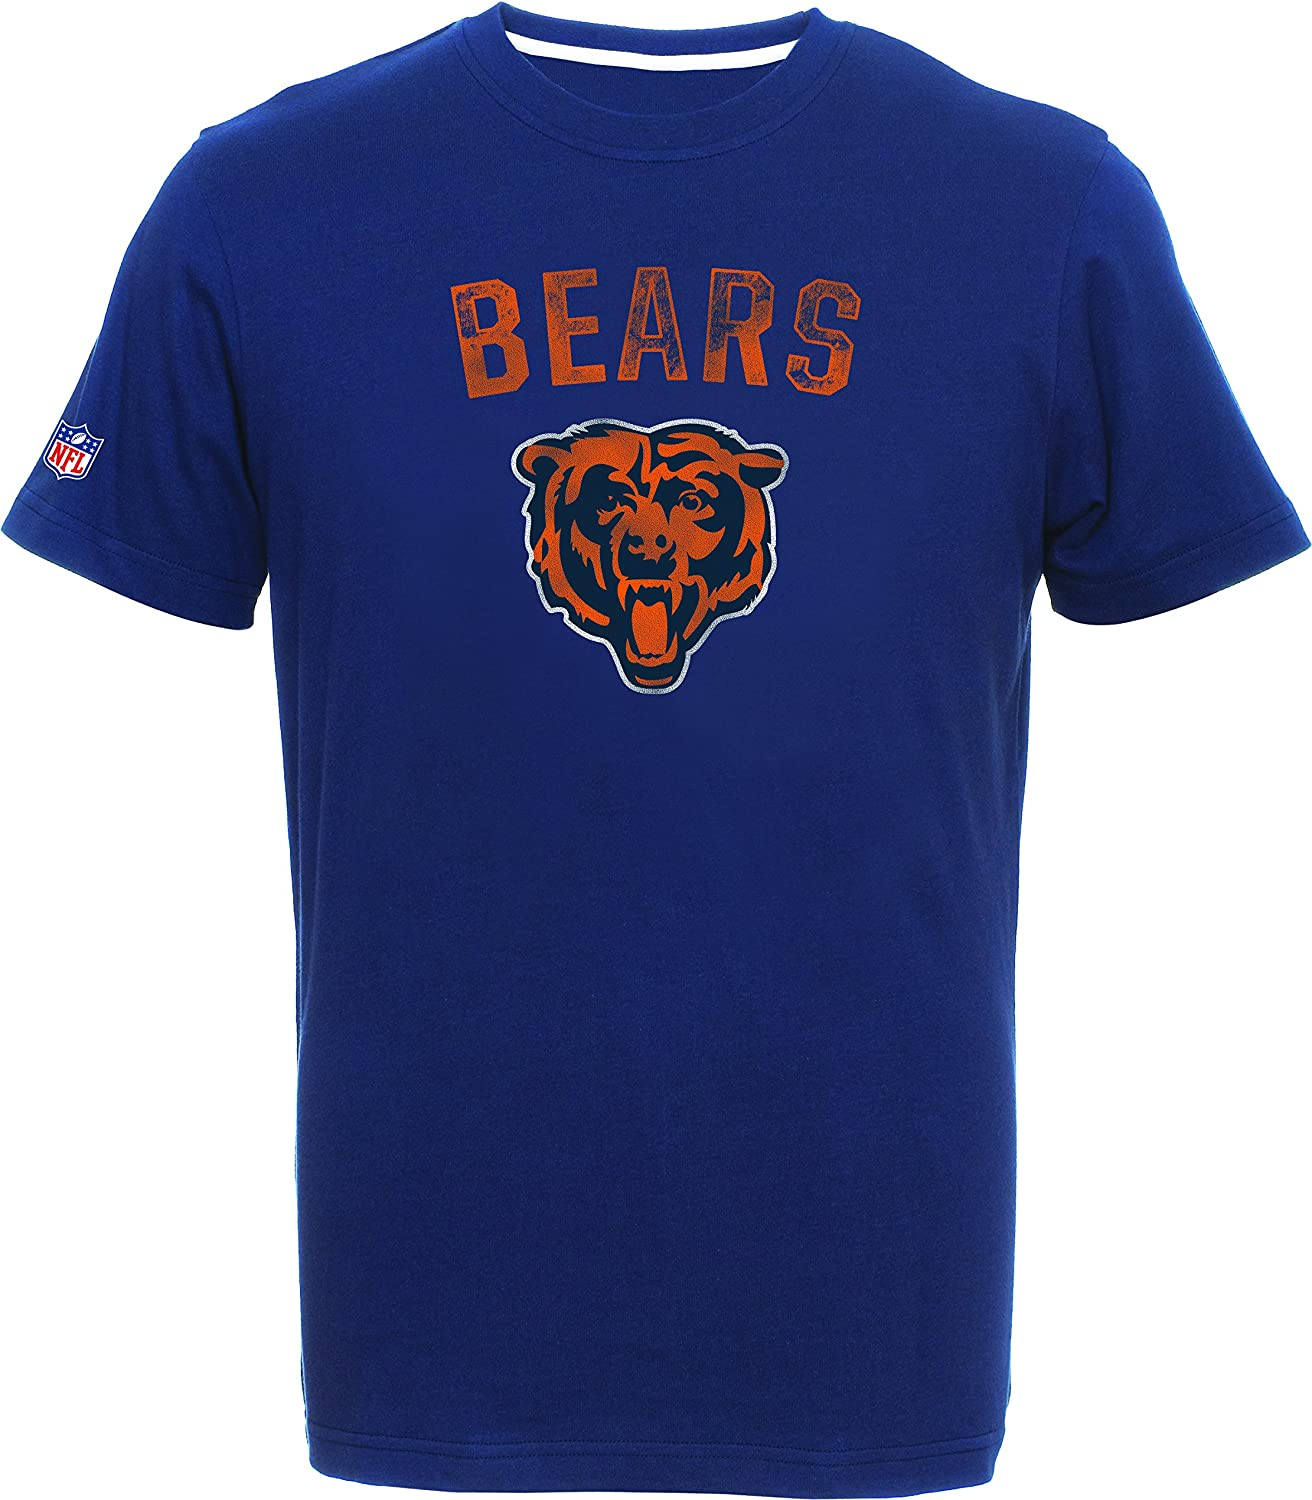 Majestic Athletic NFL Football T-Shirt Bradler Chicago Bears Navy